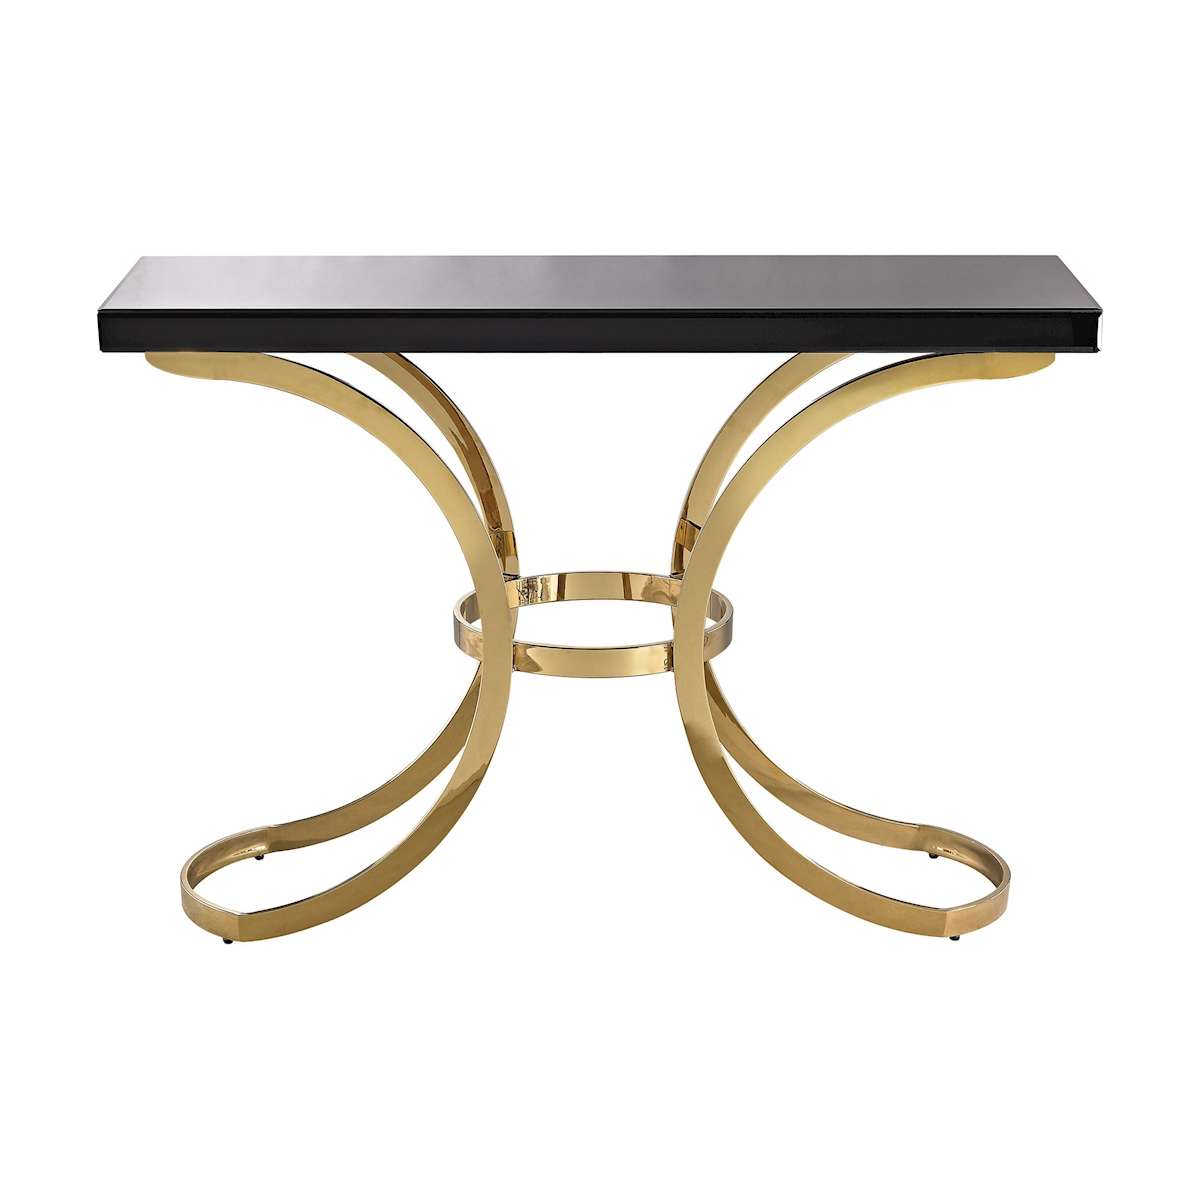 Beacon Towers Console Table in Gold Plate and Black Glass | Elk Home